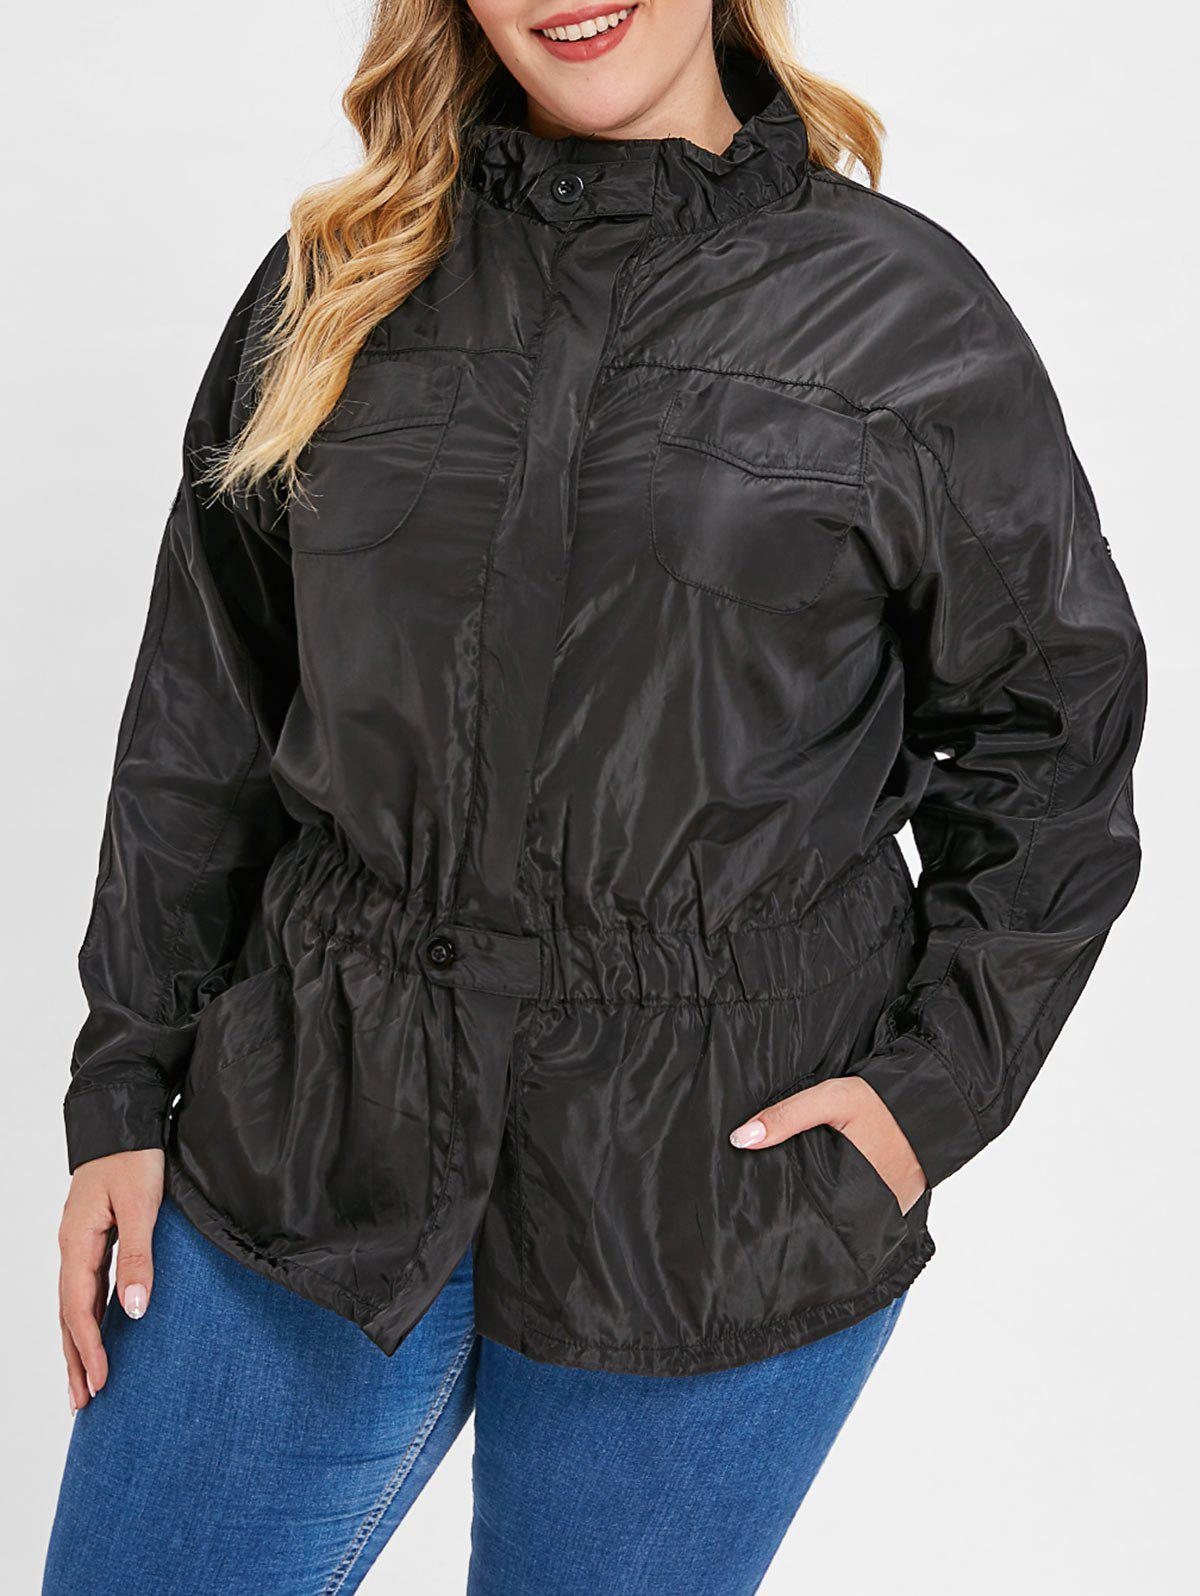 Drawstring Waist Windbreaker Jacket